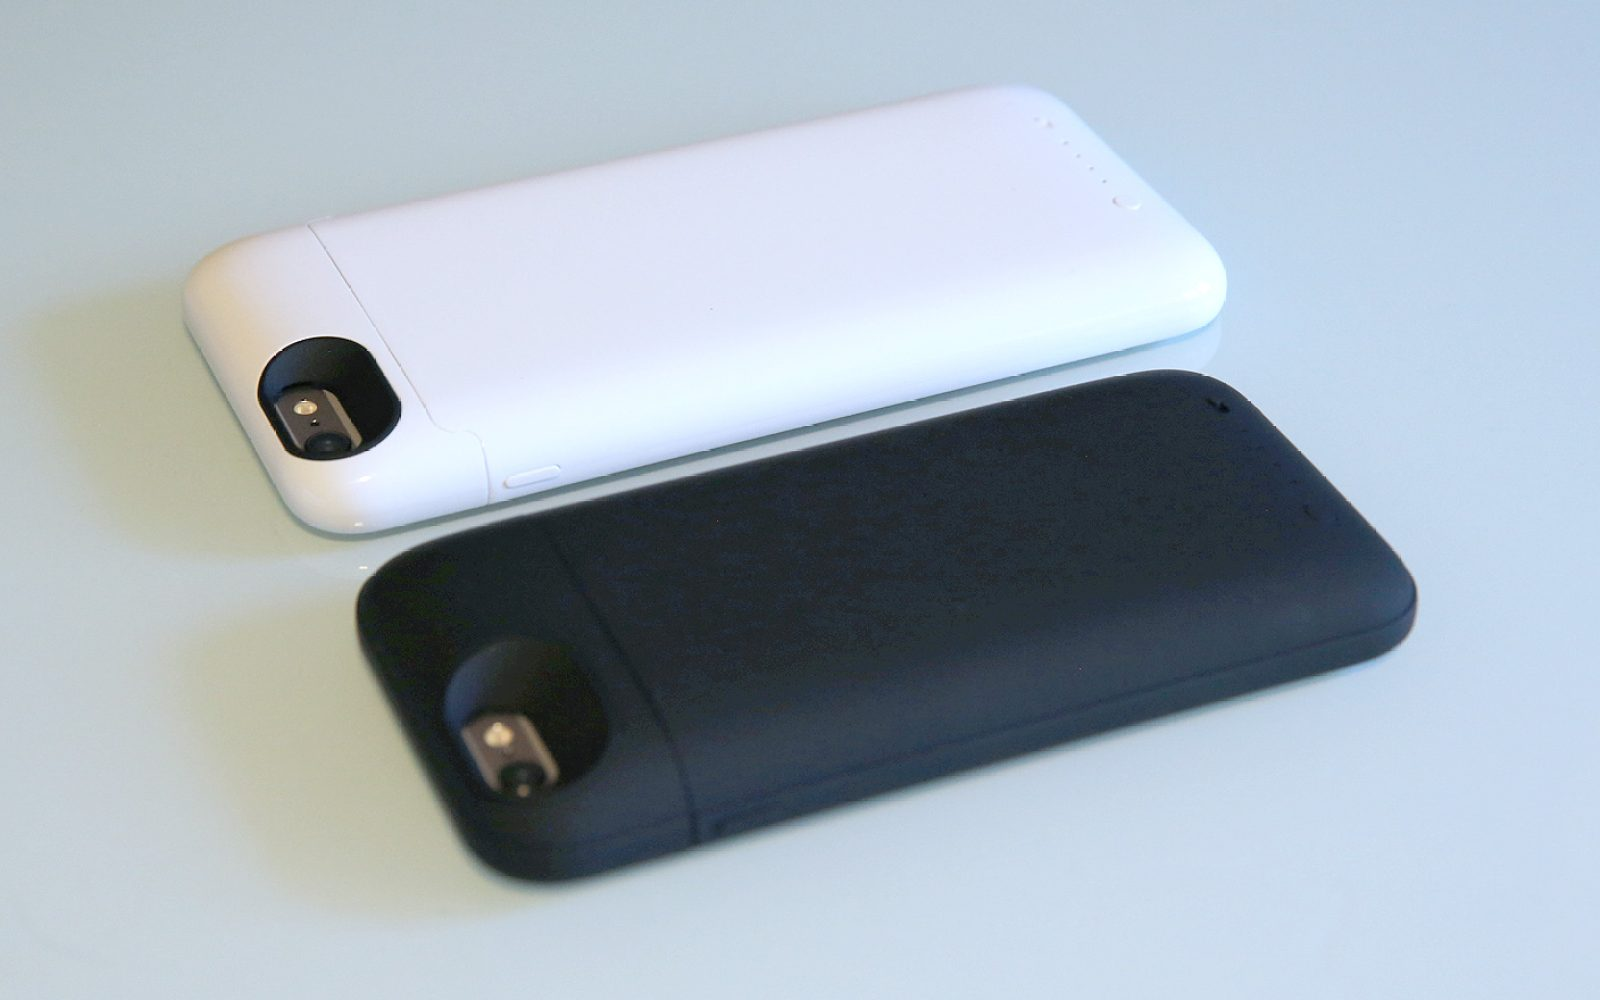 newest 5c0d8 e2b42 Review: Mophie's Juice Packs for iPhone 6 + 6 Plus are polished ...